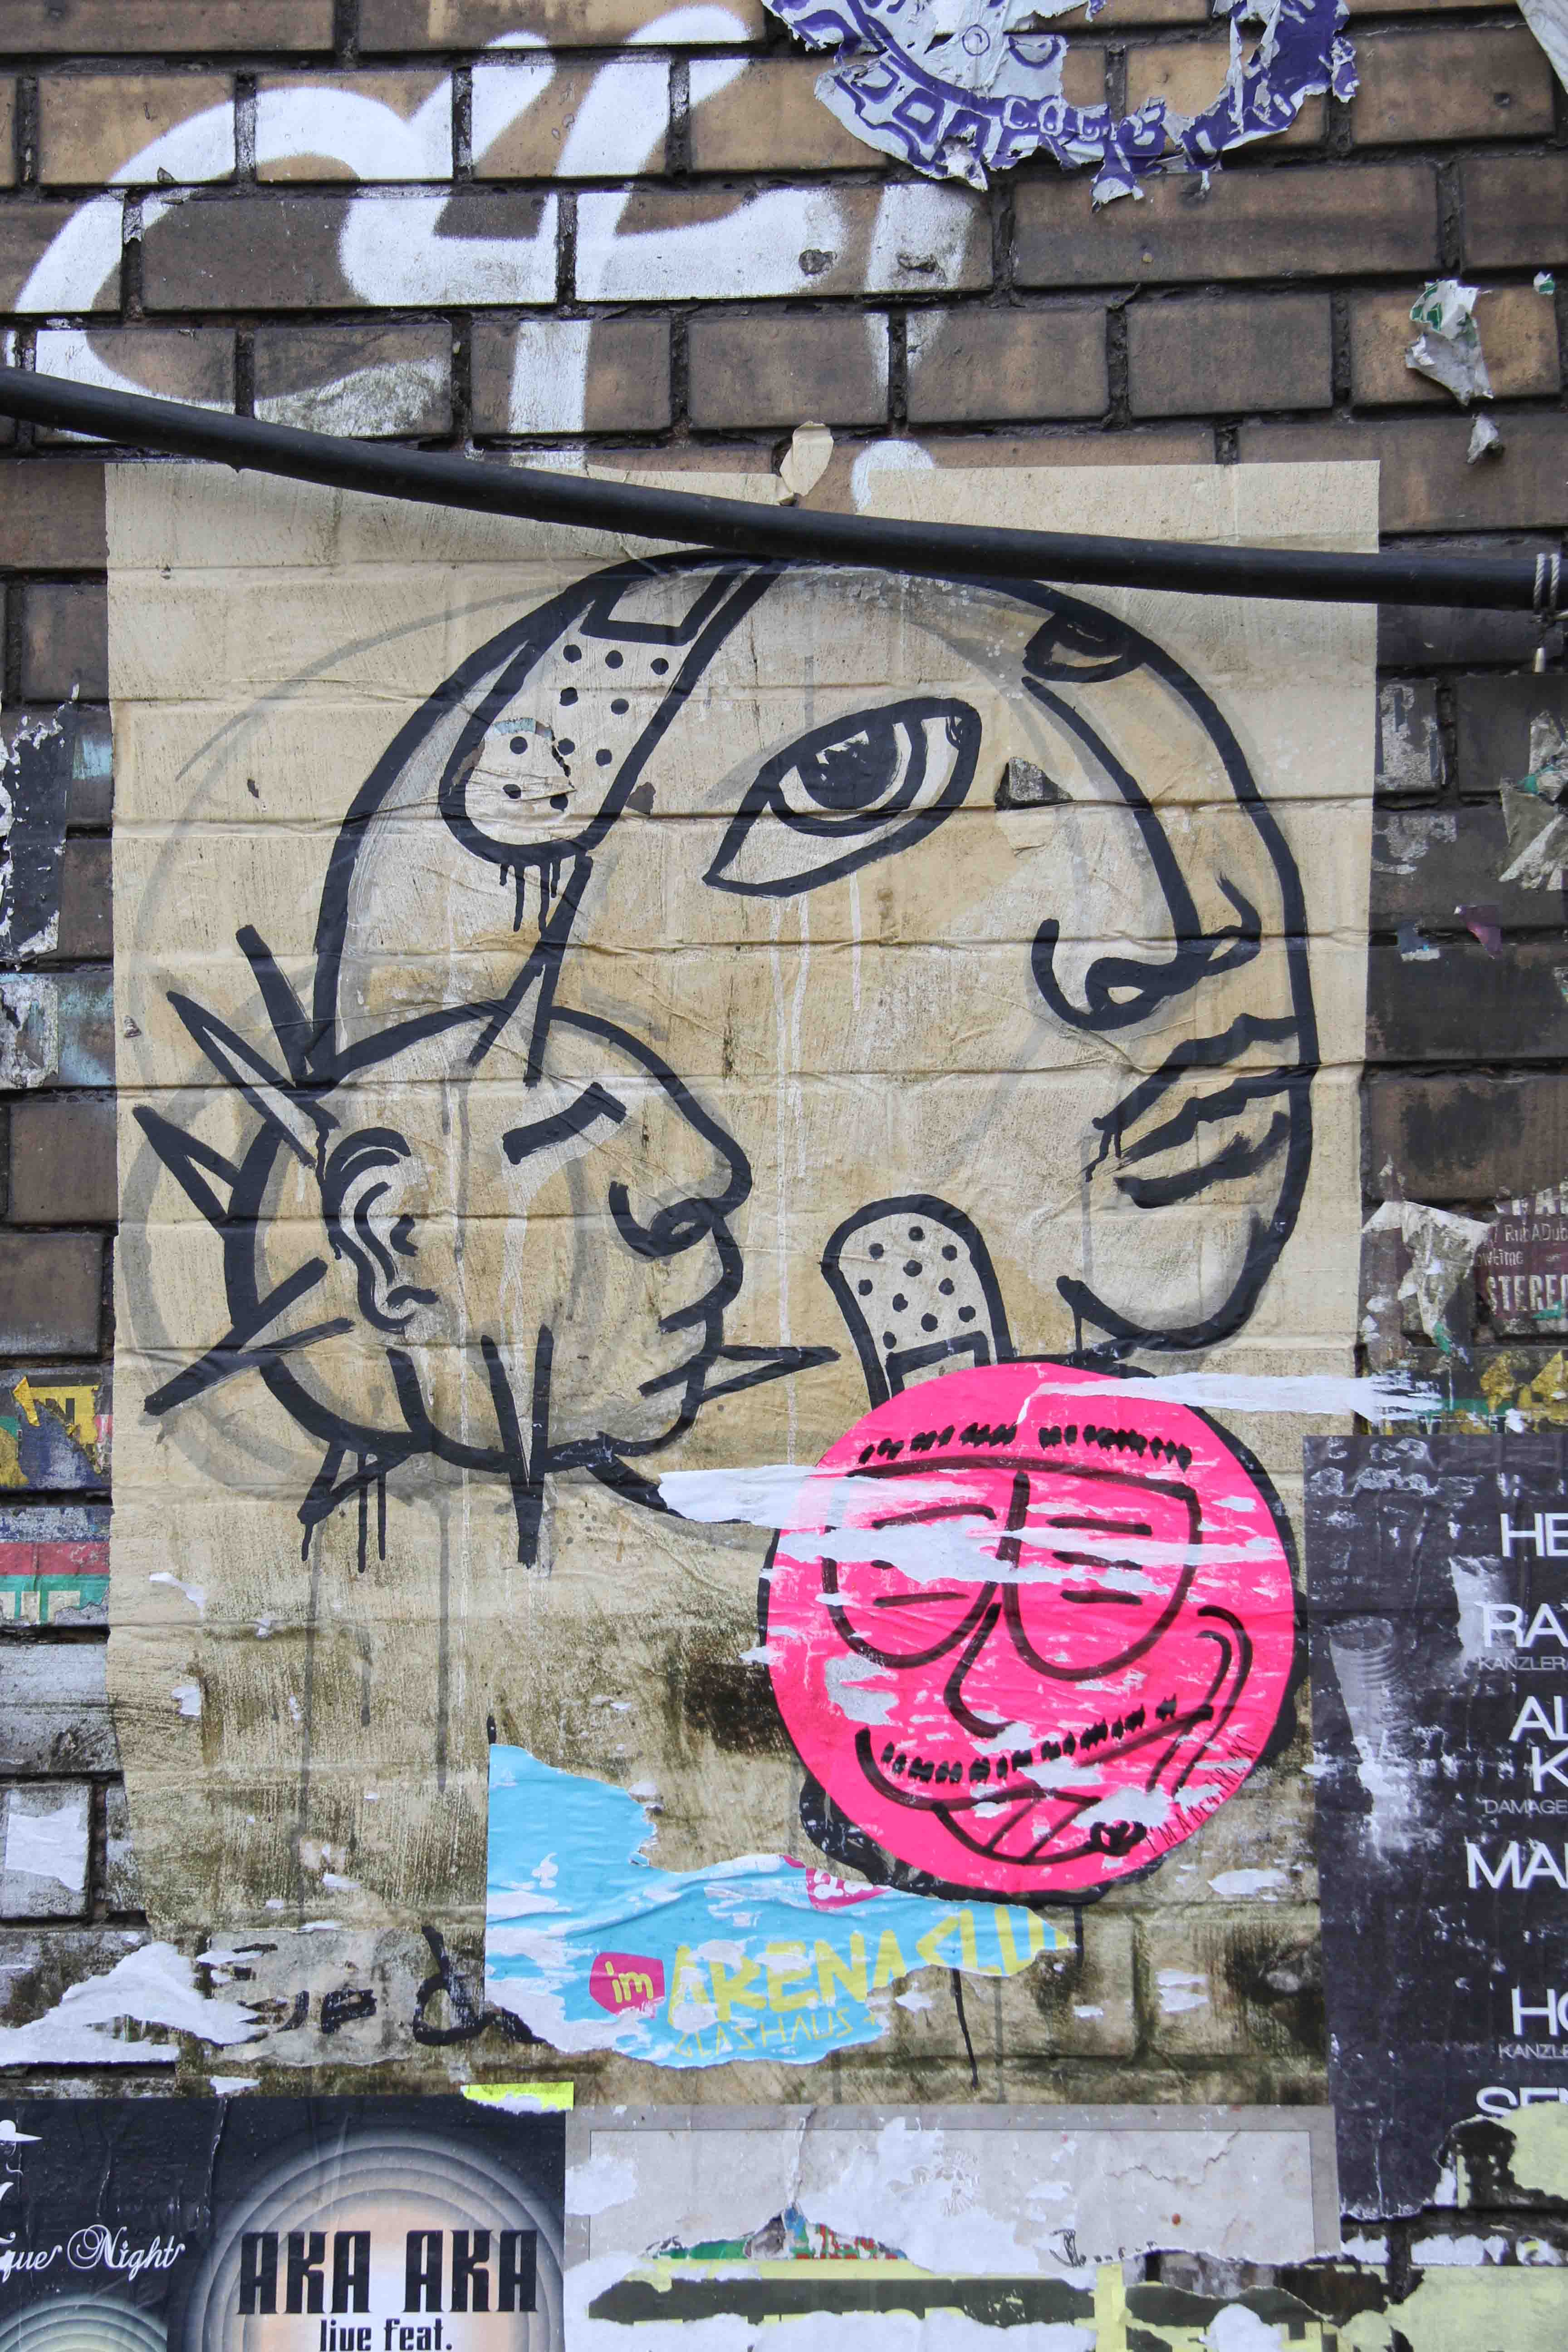 Heads and Plasters (Caffeine) - Street Art by Dede in Berlin